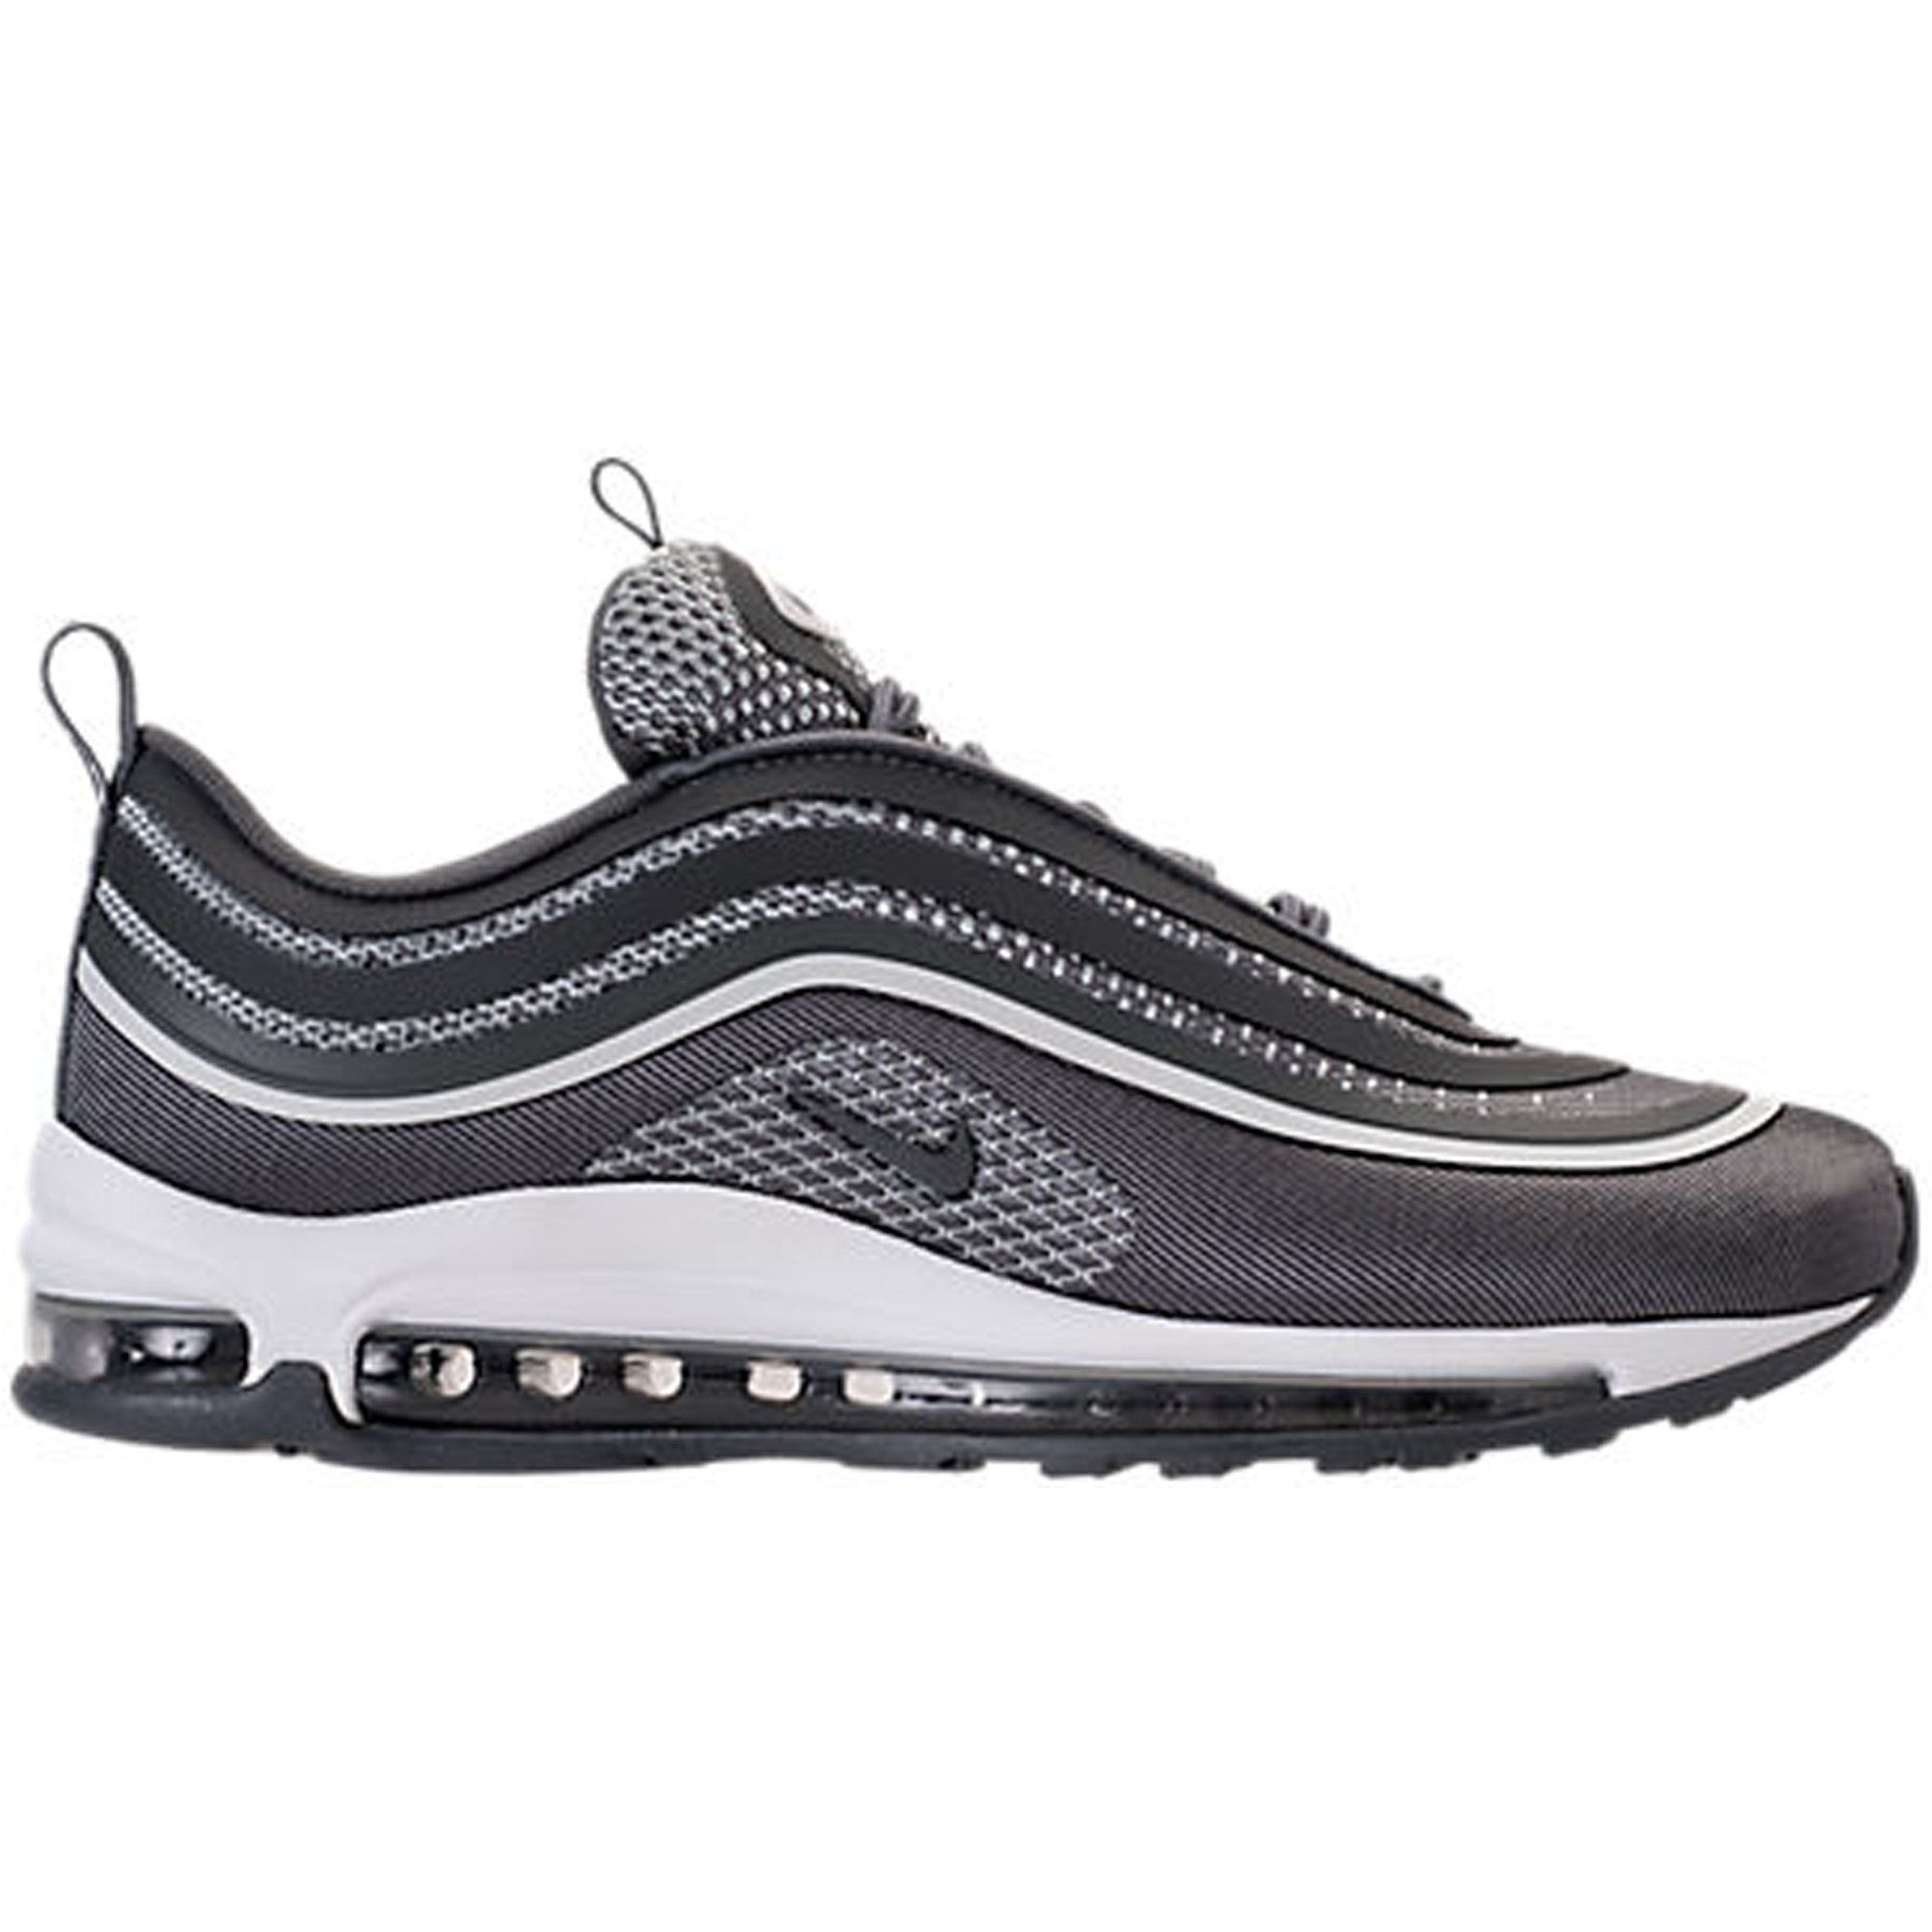 Nike Air Max 97 Ultra 17 BlackPure Platinum Anthracite For Sale